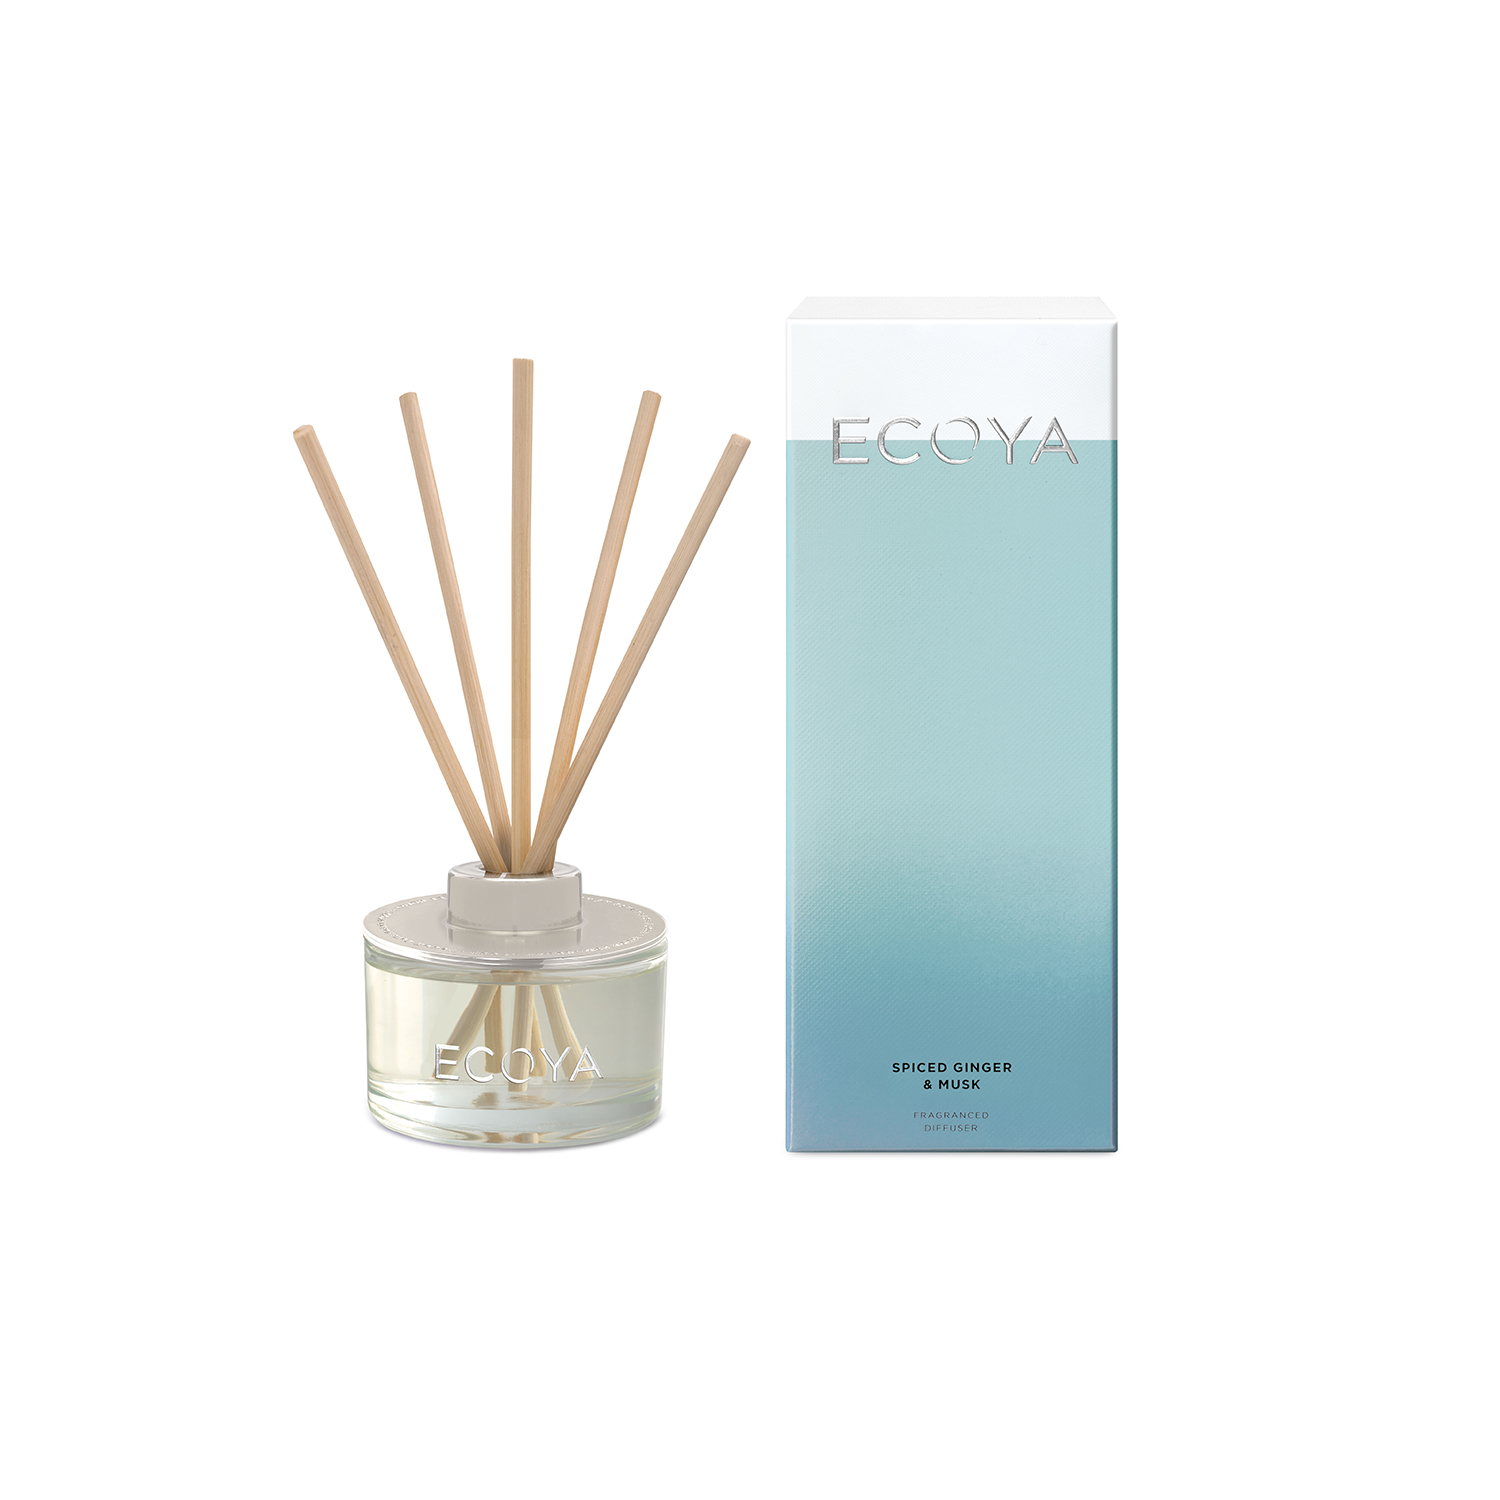 Ecoya Spiced Ginger and Musk Reed Diffuser 200ml